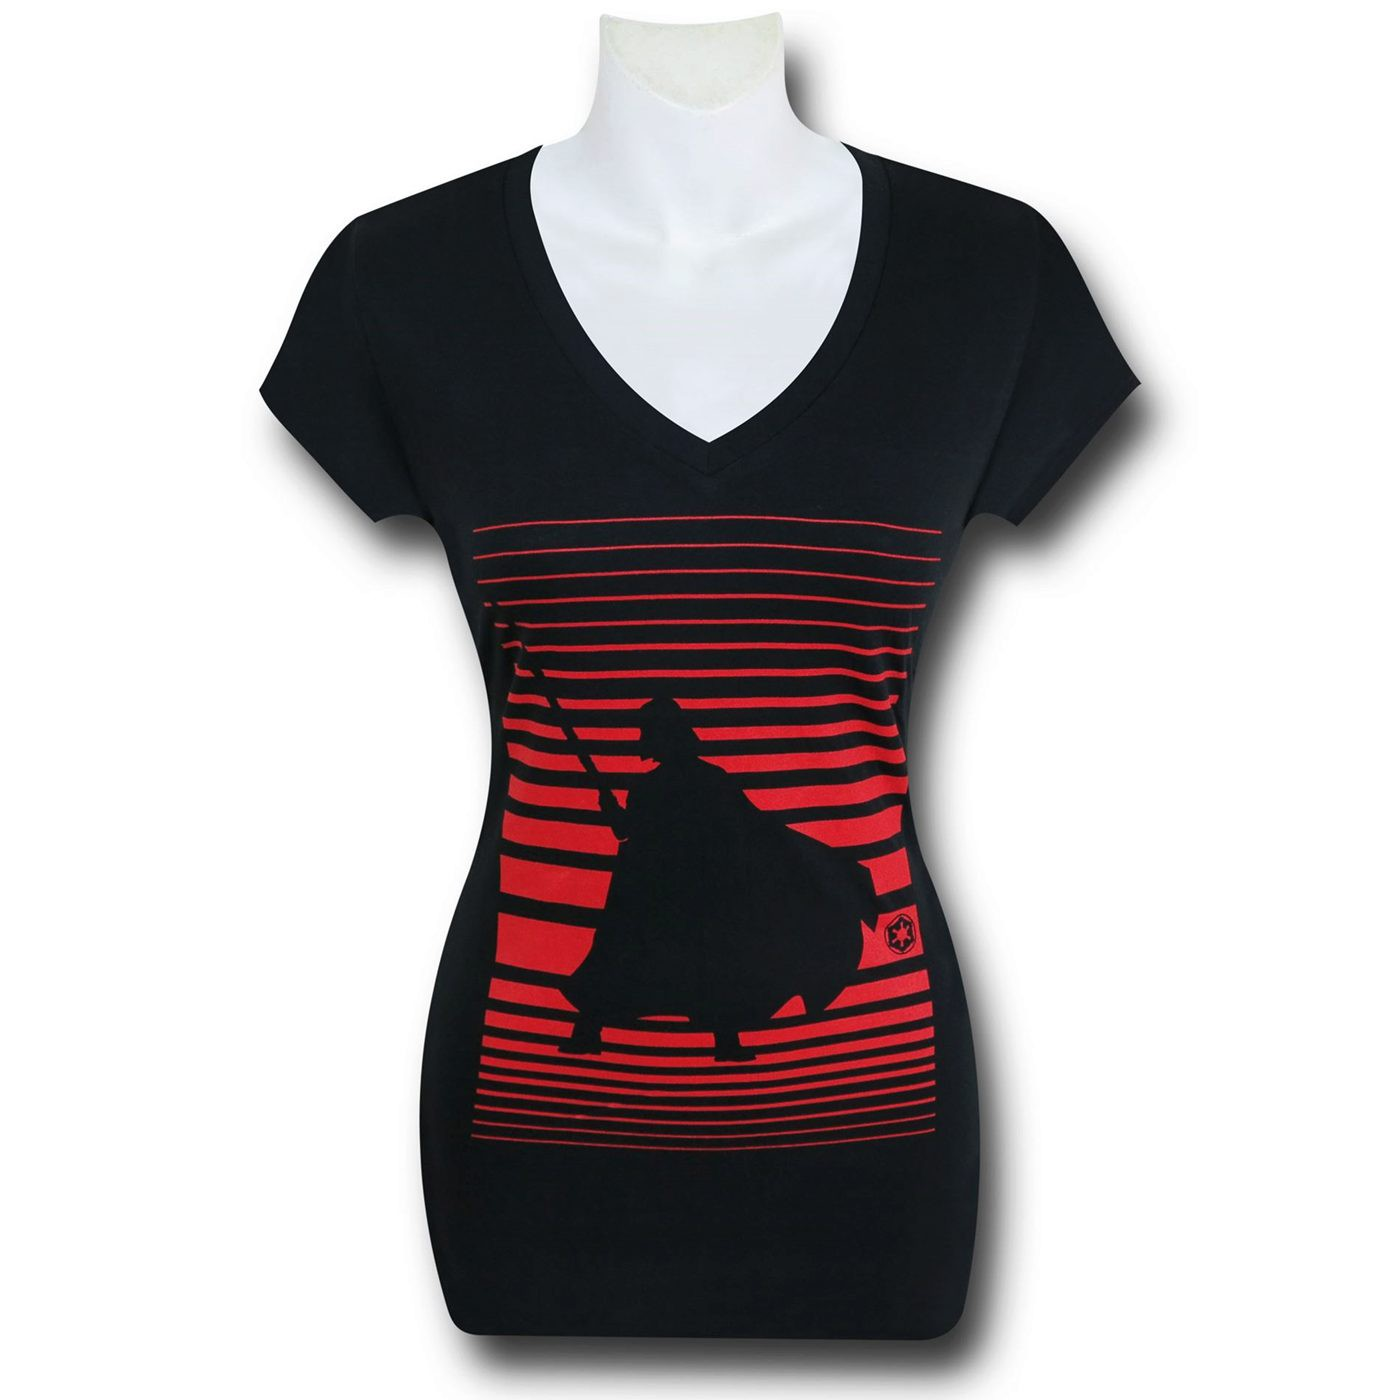 Star Wars Vader Vision Women's V-Neck T-Shirt